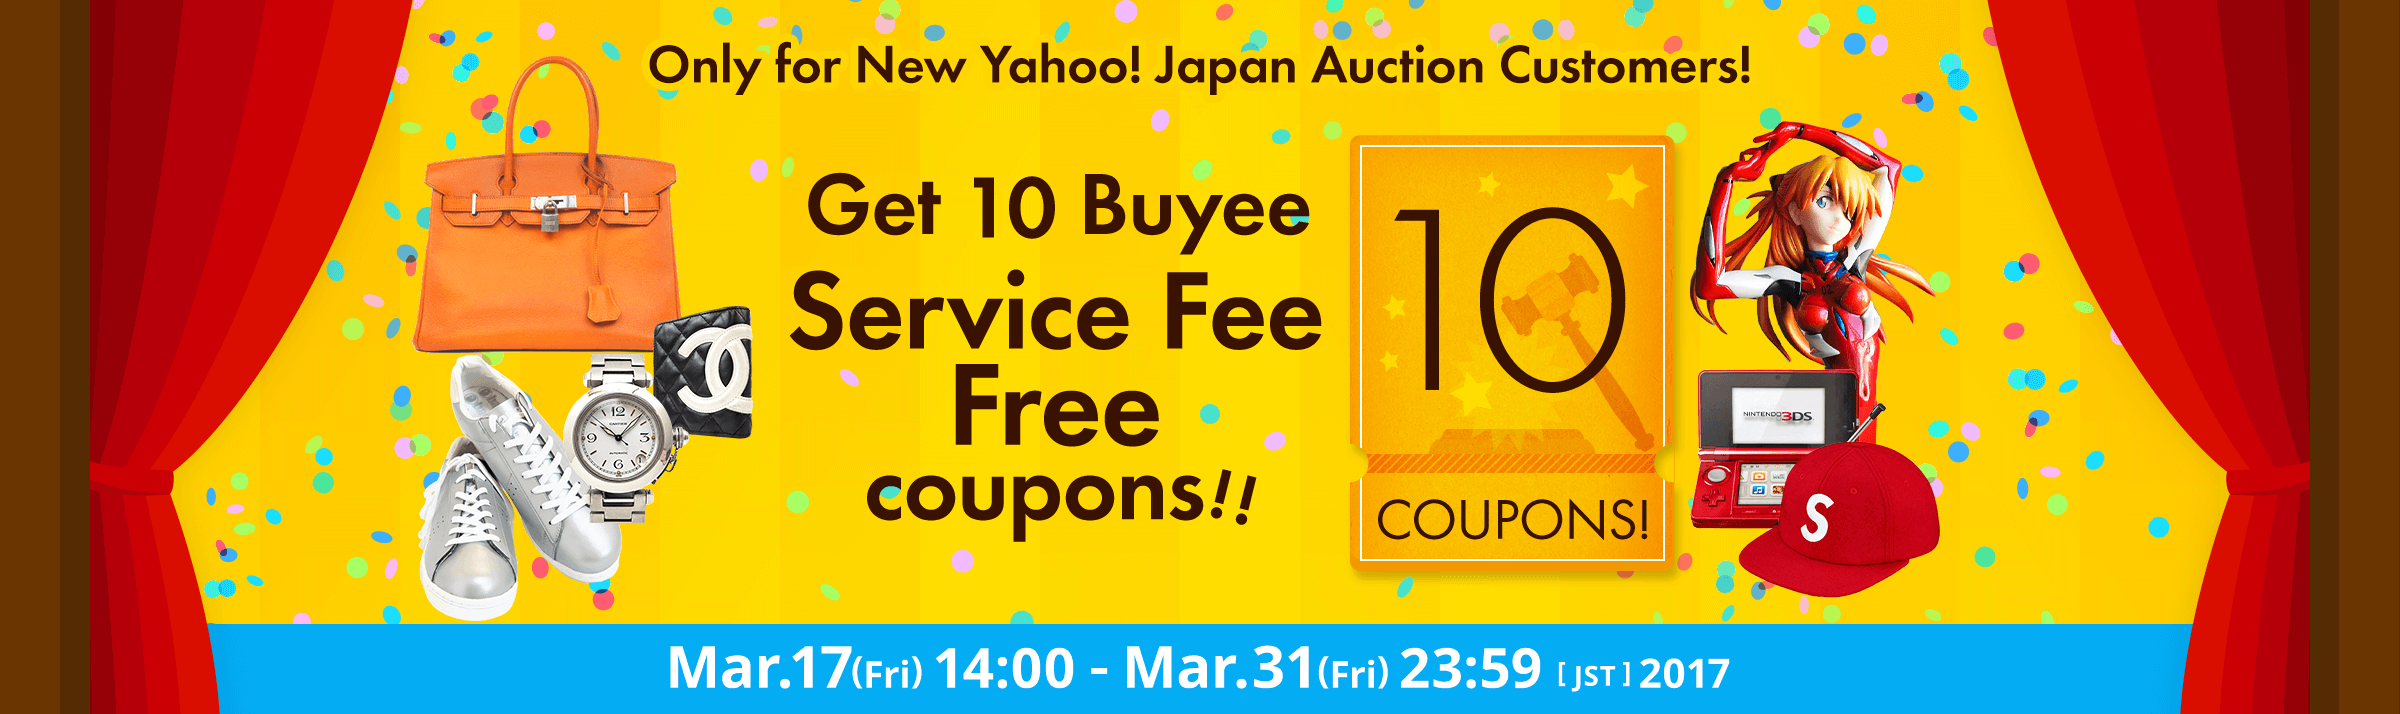 get 10 Buyee service fee free coupons!